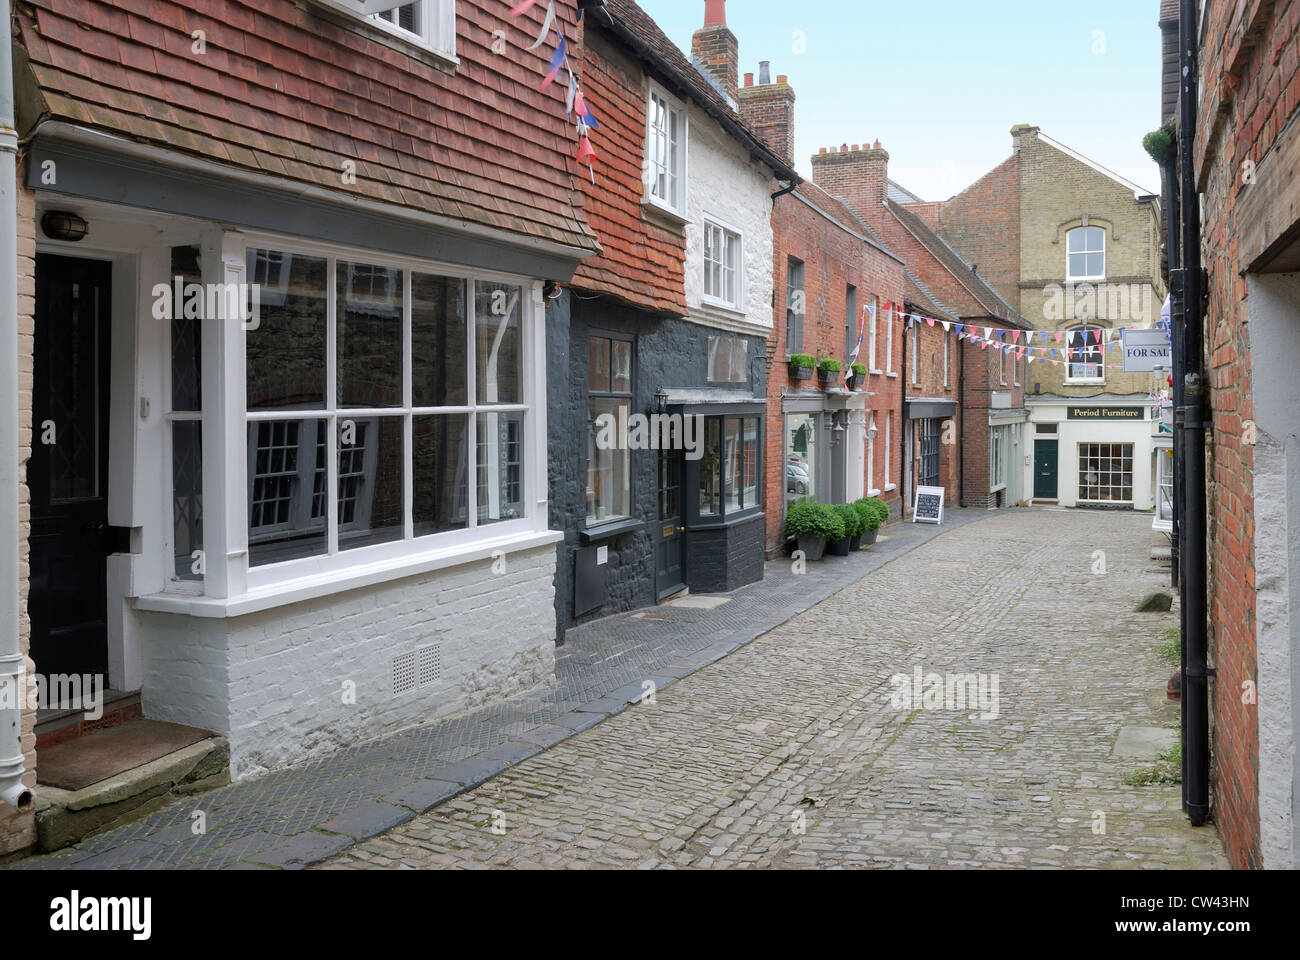 Cobbled street in Petworth. West Sussex. England - Stock Image